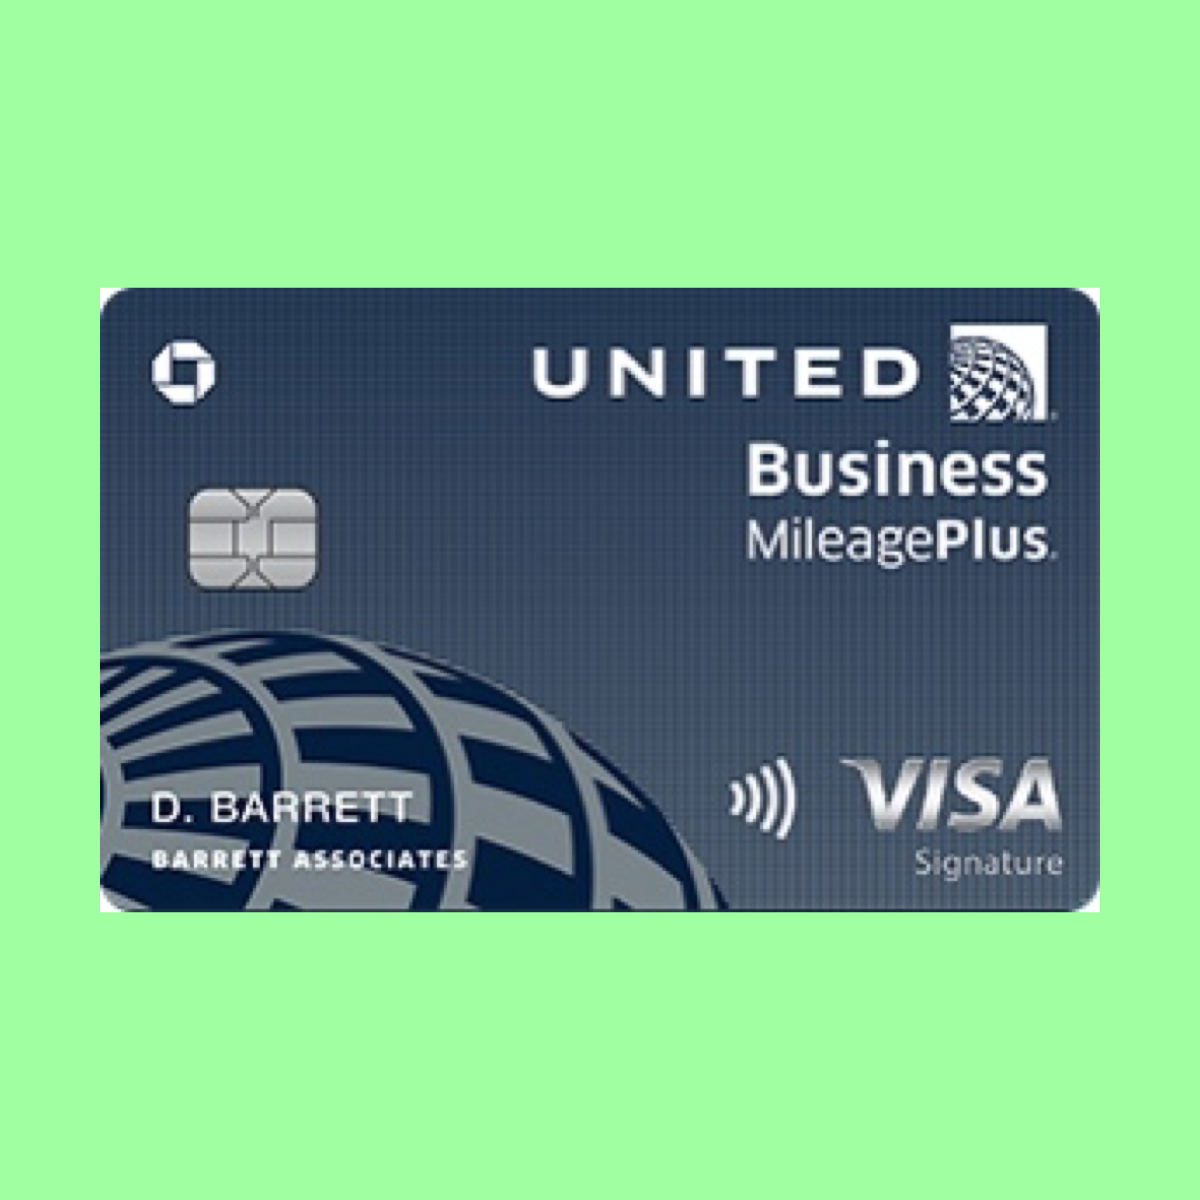 United Business Card The Point Calculator Employees Card The Unit Business